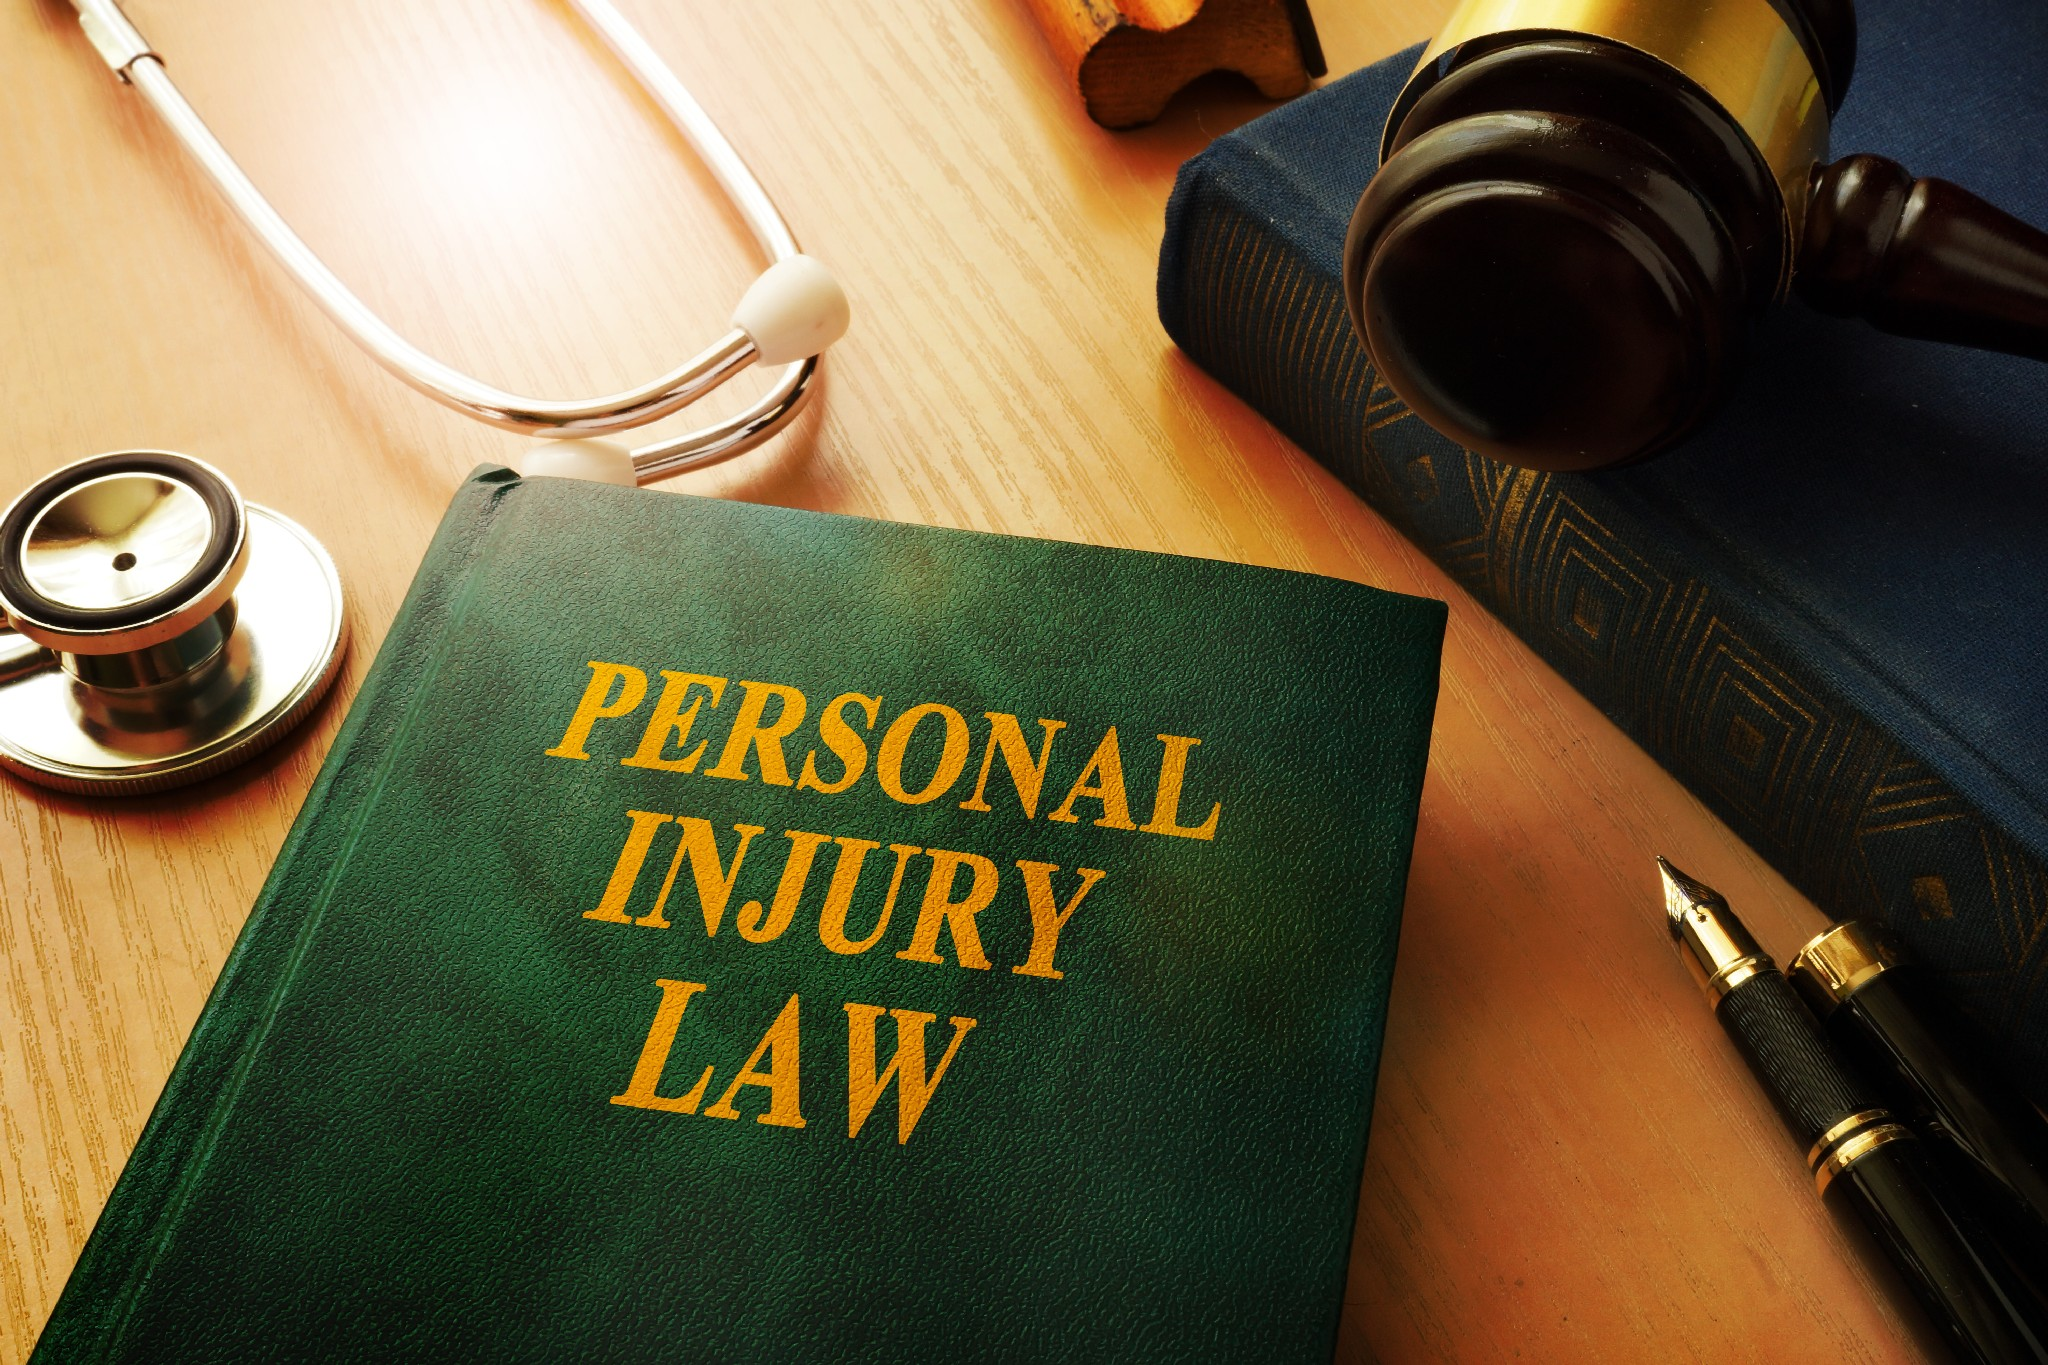 Workers Compensation Law Firm Profile